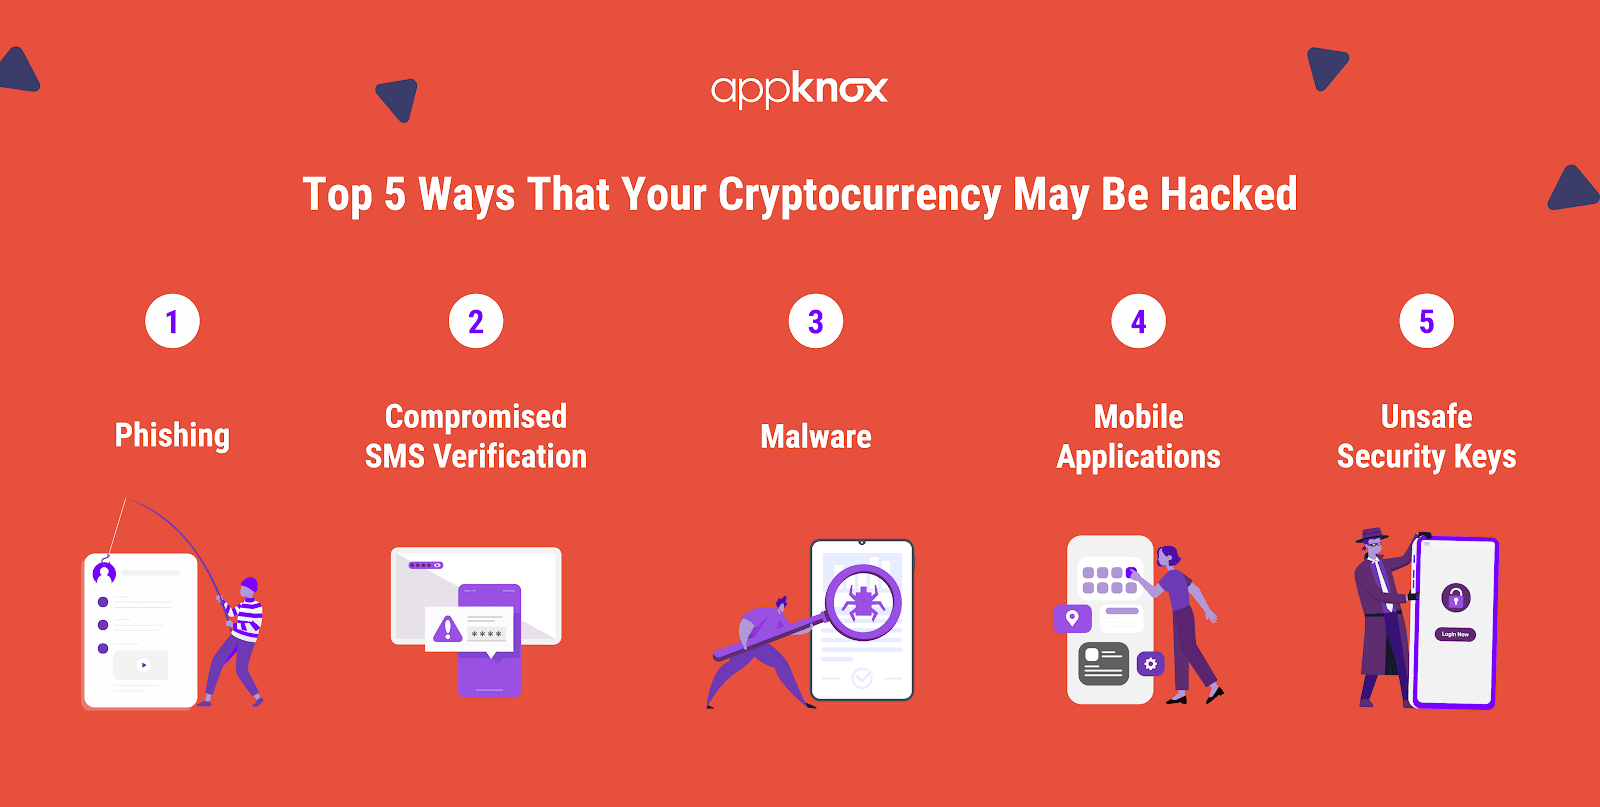 Top 5 ways that your cryptocurrency may be hacked